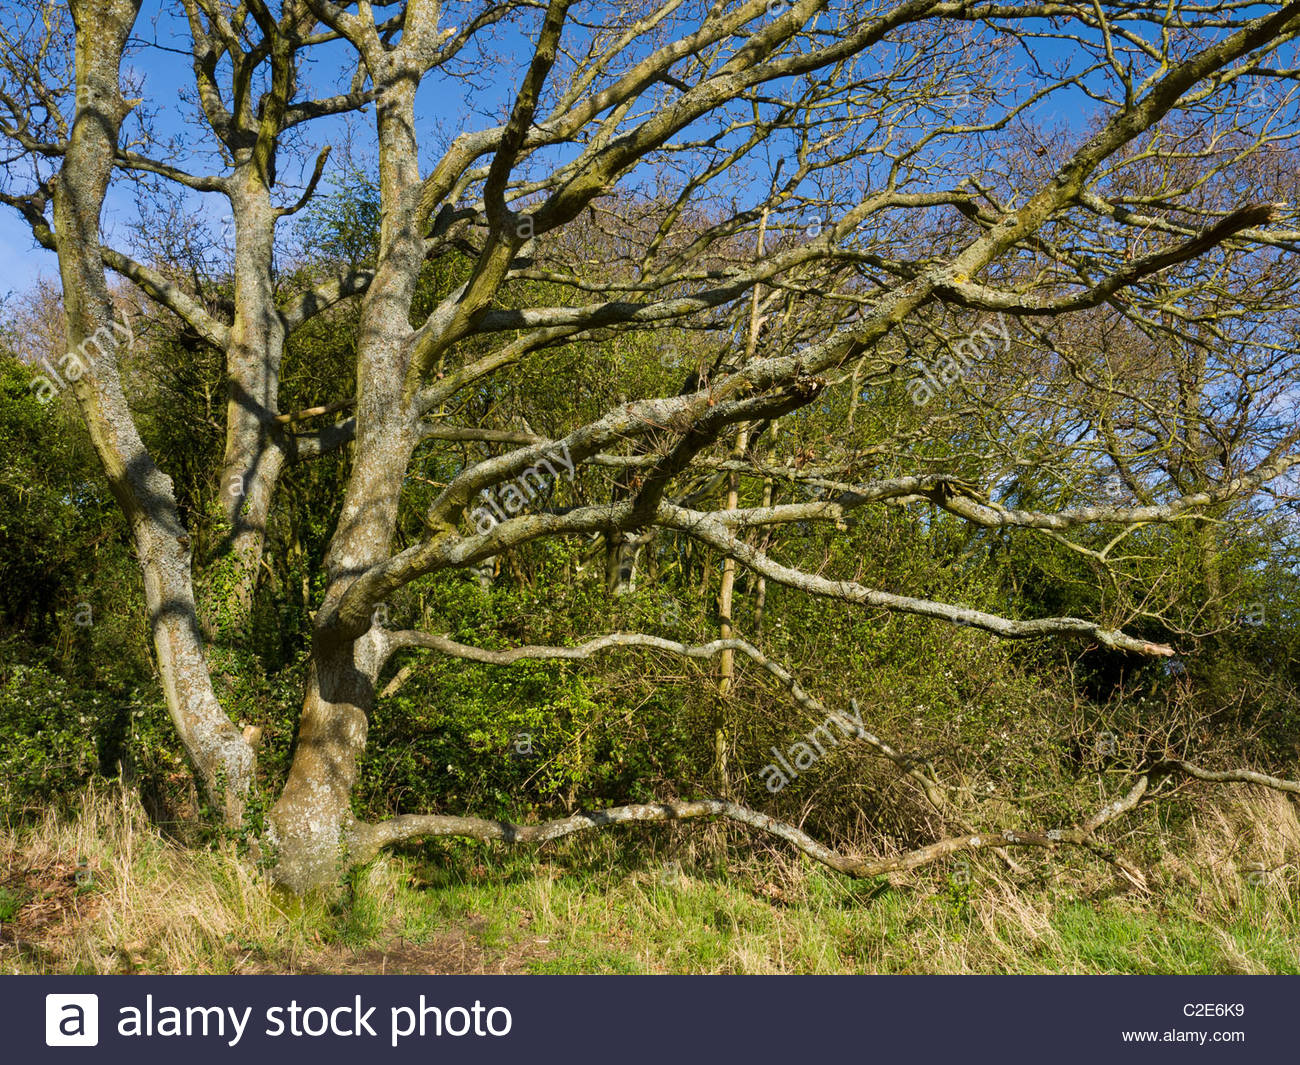 Old Mature Tree large Branches Hampshire - Stock Image